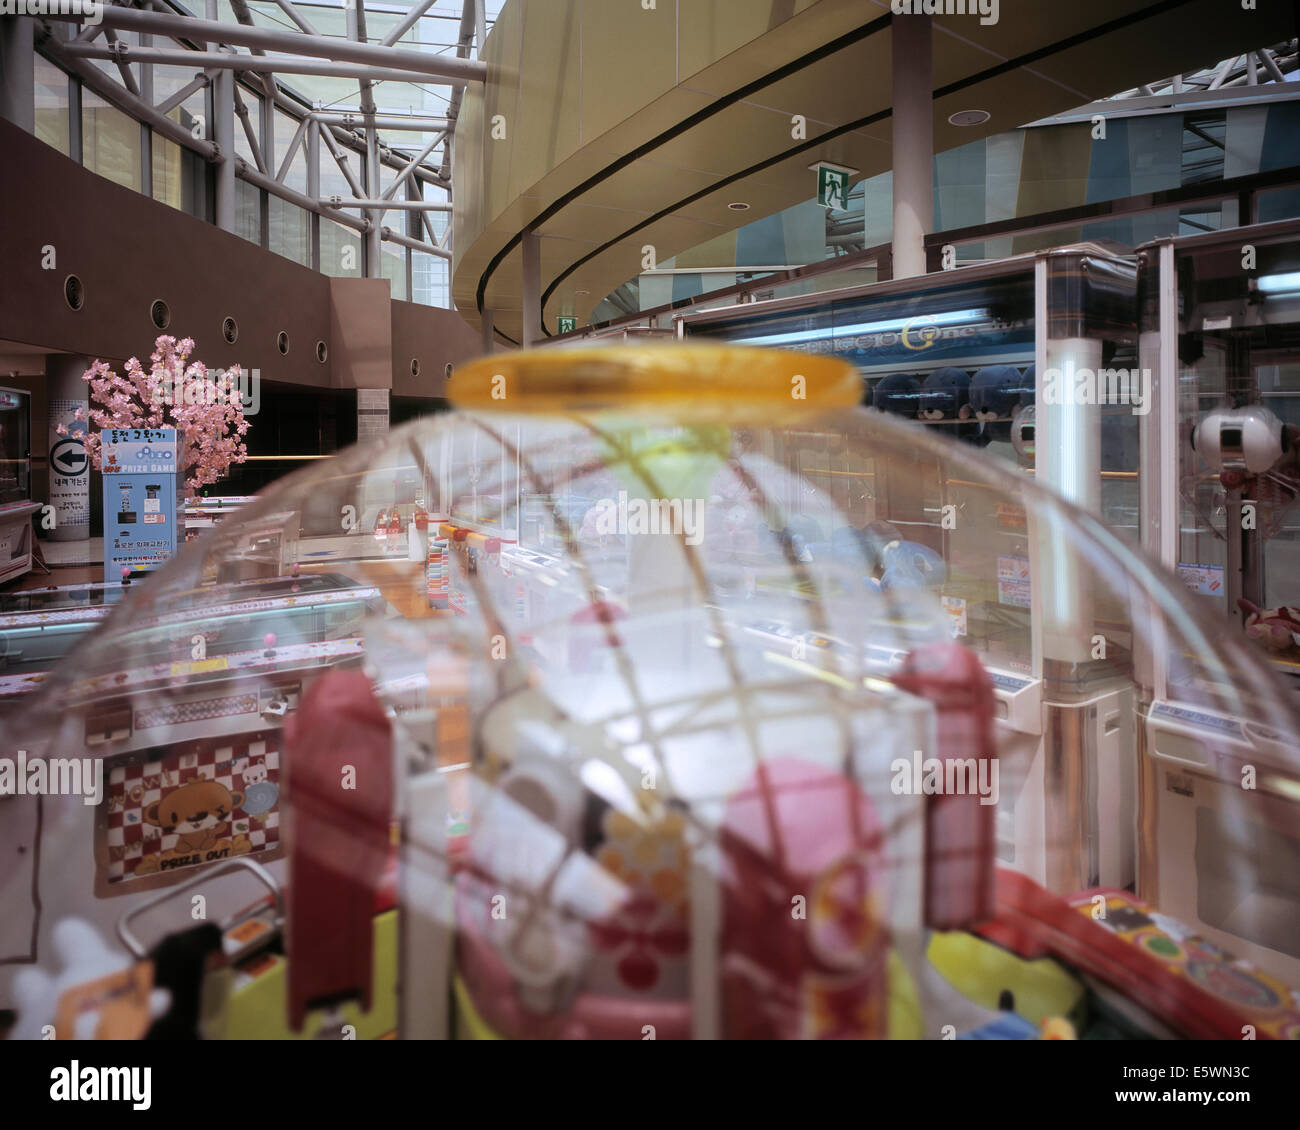 Arcade games at Star City shopping center in Seoul, South Korea - Stock Image